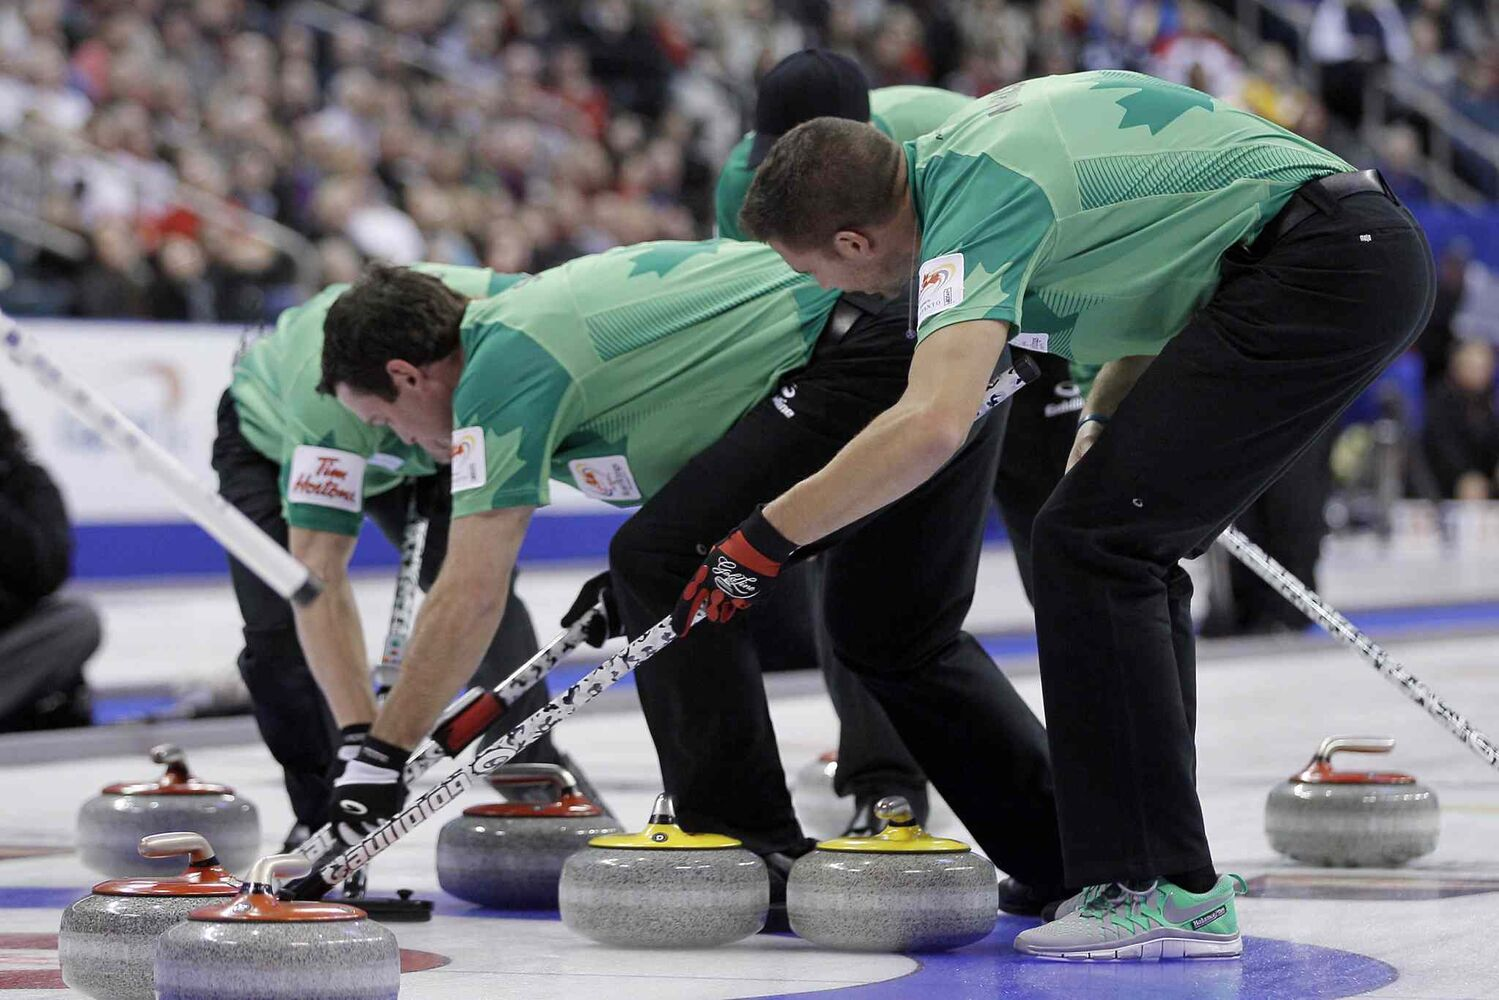 Tyrel Griffith (left), Rick Sawatsky and John Morris (right) sweep one of John Cotter's stones to score two points in the fifth end. (John Woods / The Canadian Press)